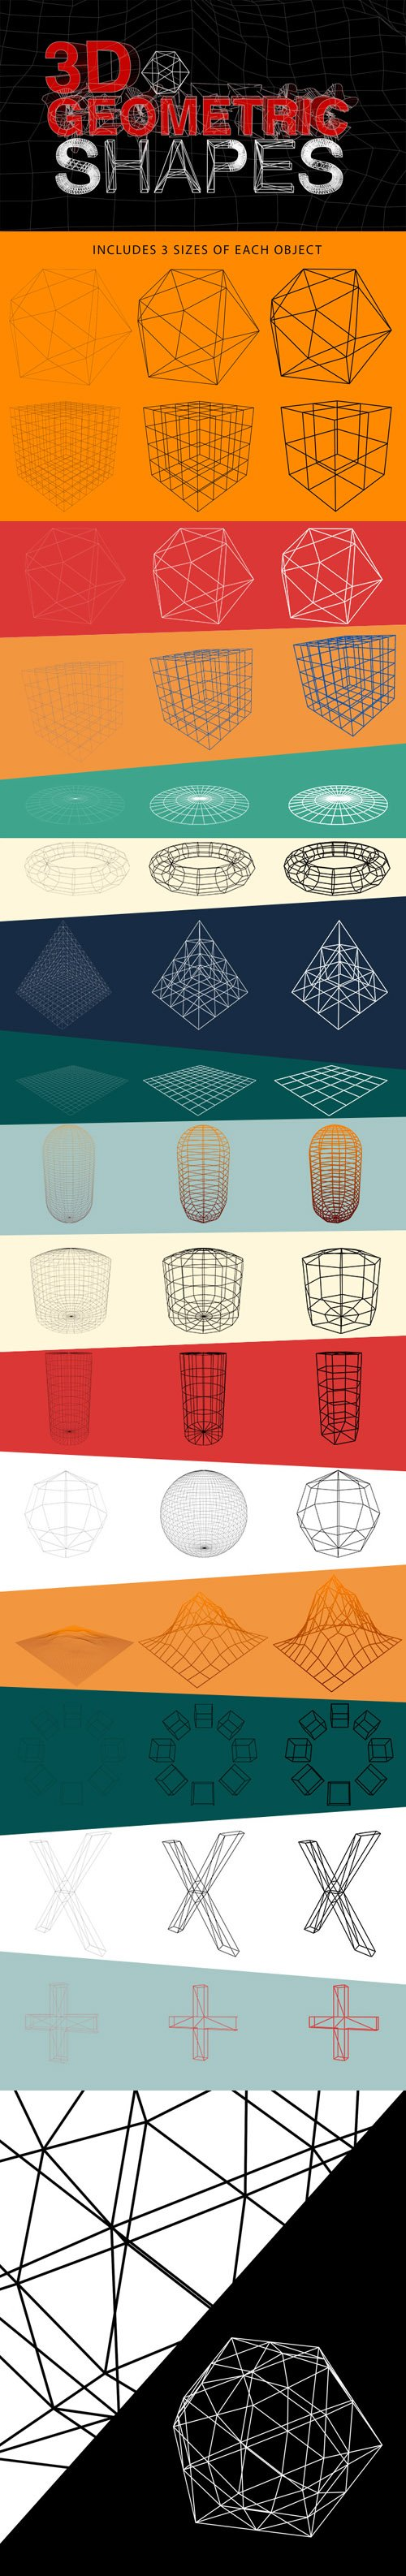 3D Geometric Shapes - Outlines  Wireframes